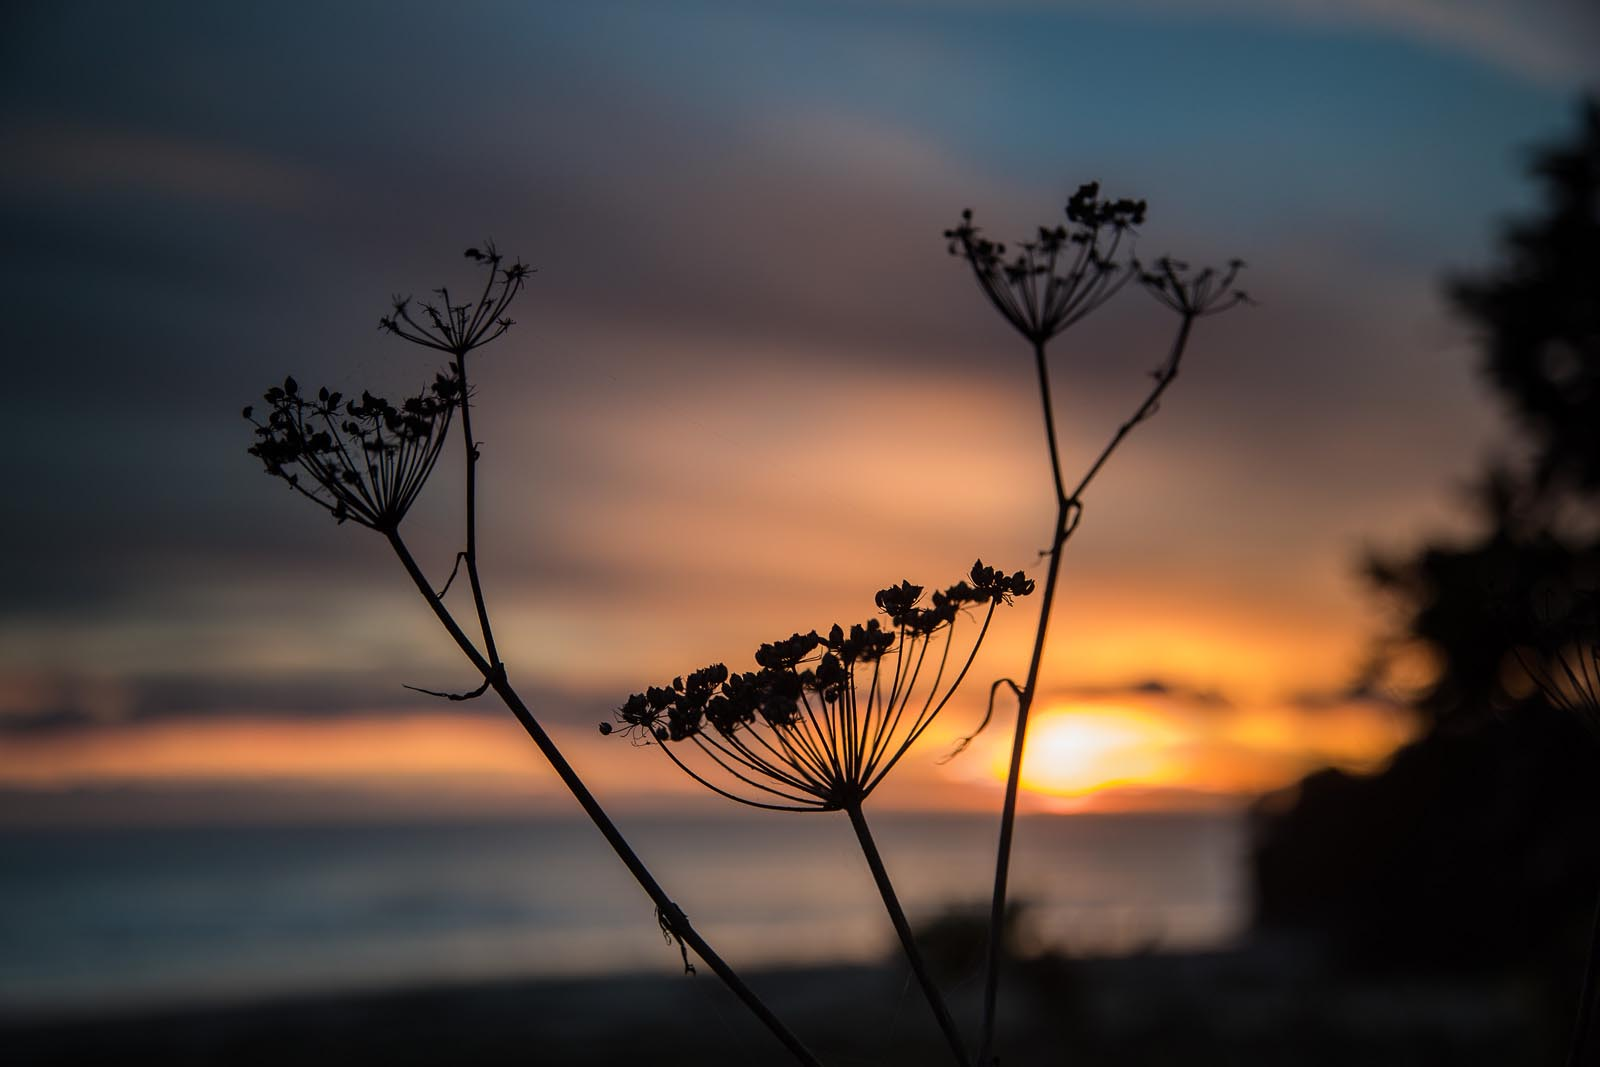 Silhouette of a flower at sunset